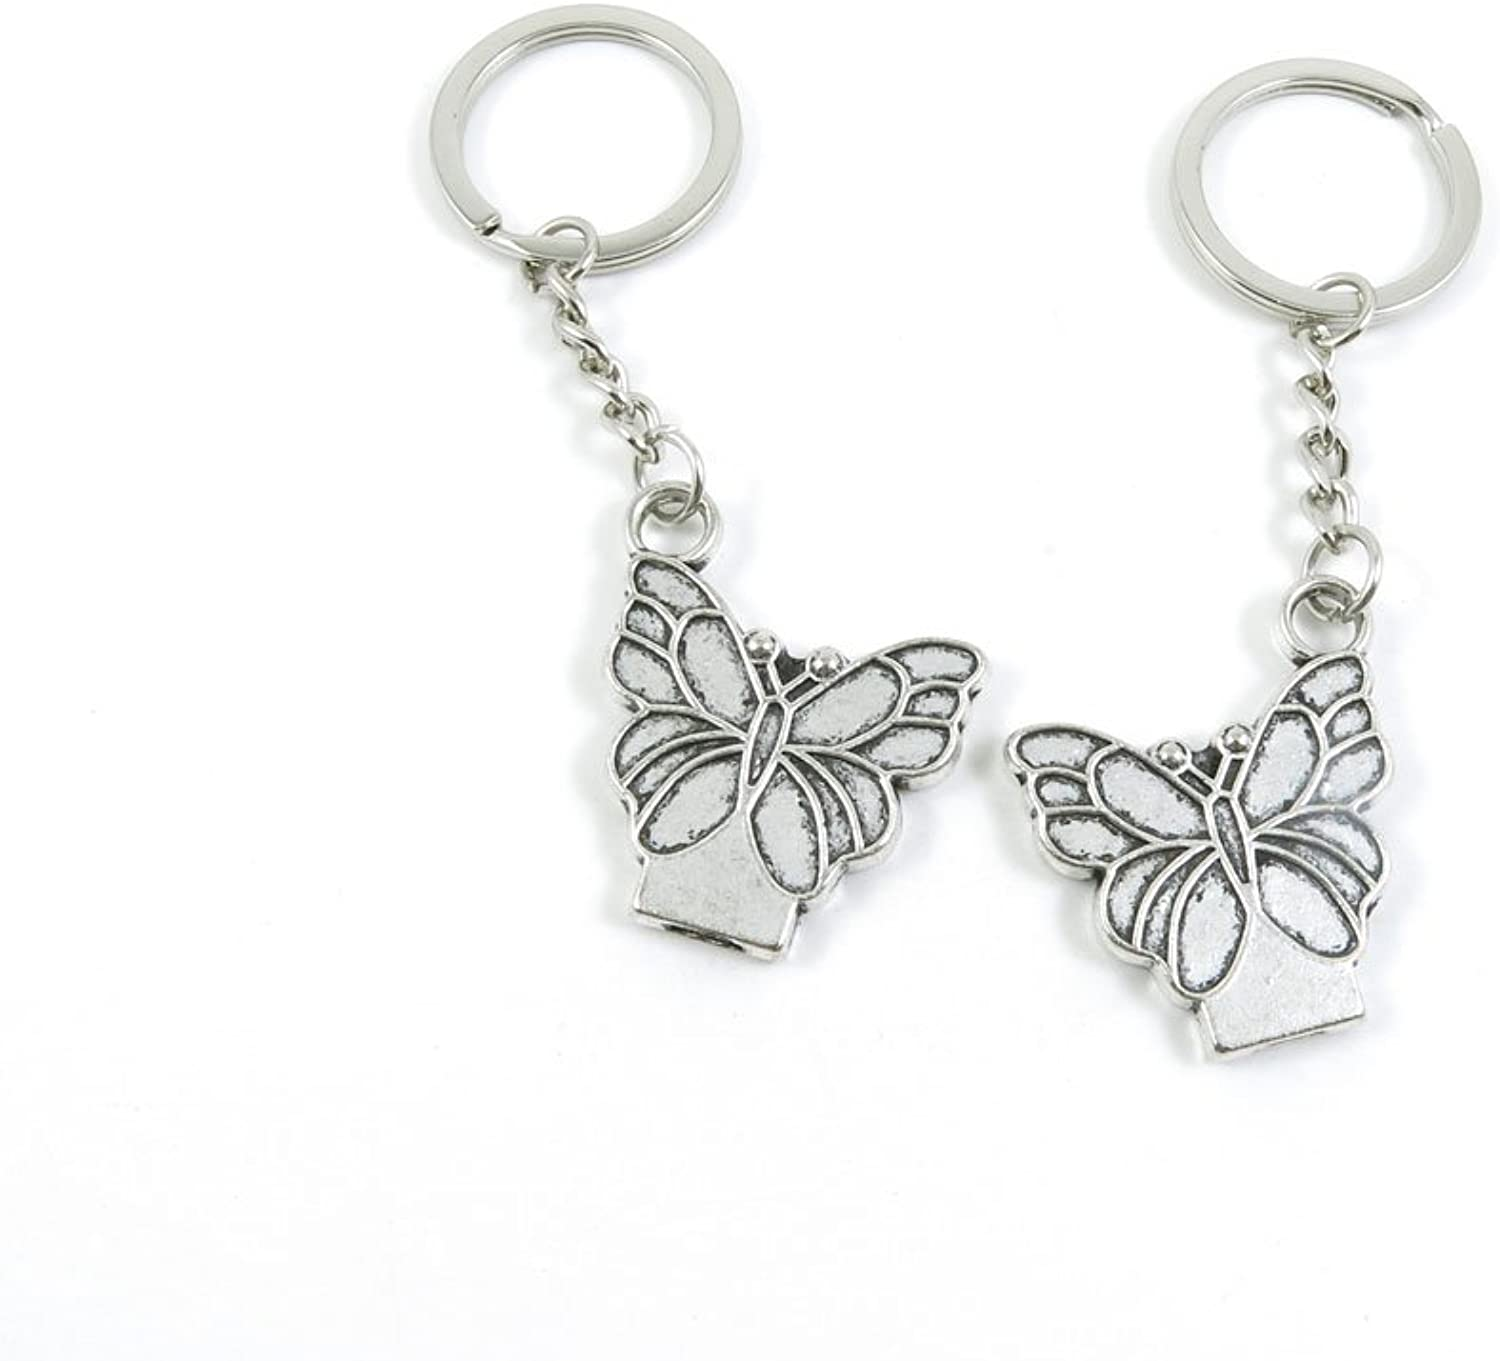 50 Pieces Keychain Keyring Door Car Key Chain Ring Tag Charms Bulk Supply Jewelry Making Clasp Findings F3ZN8H Butterfly